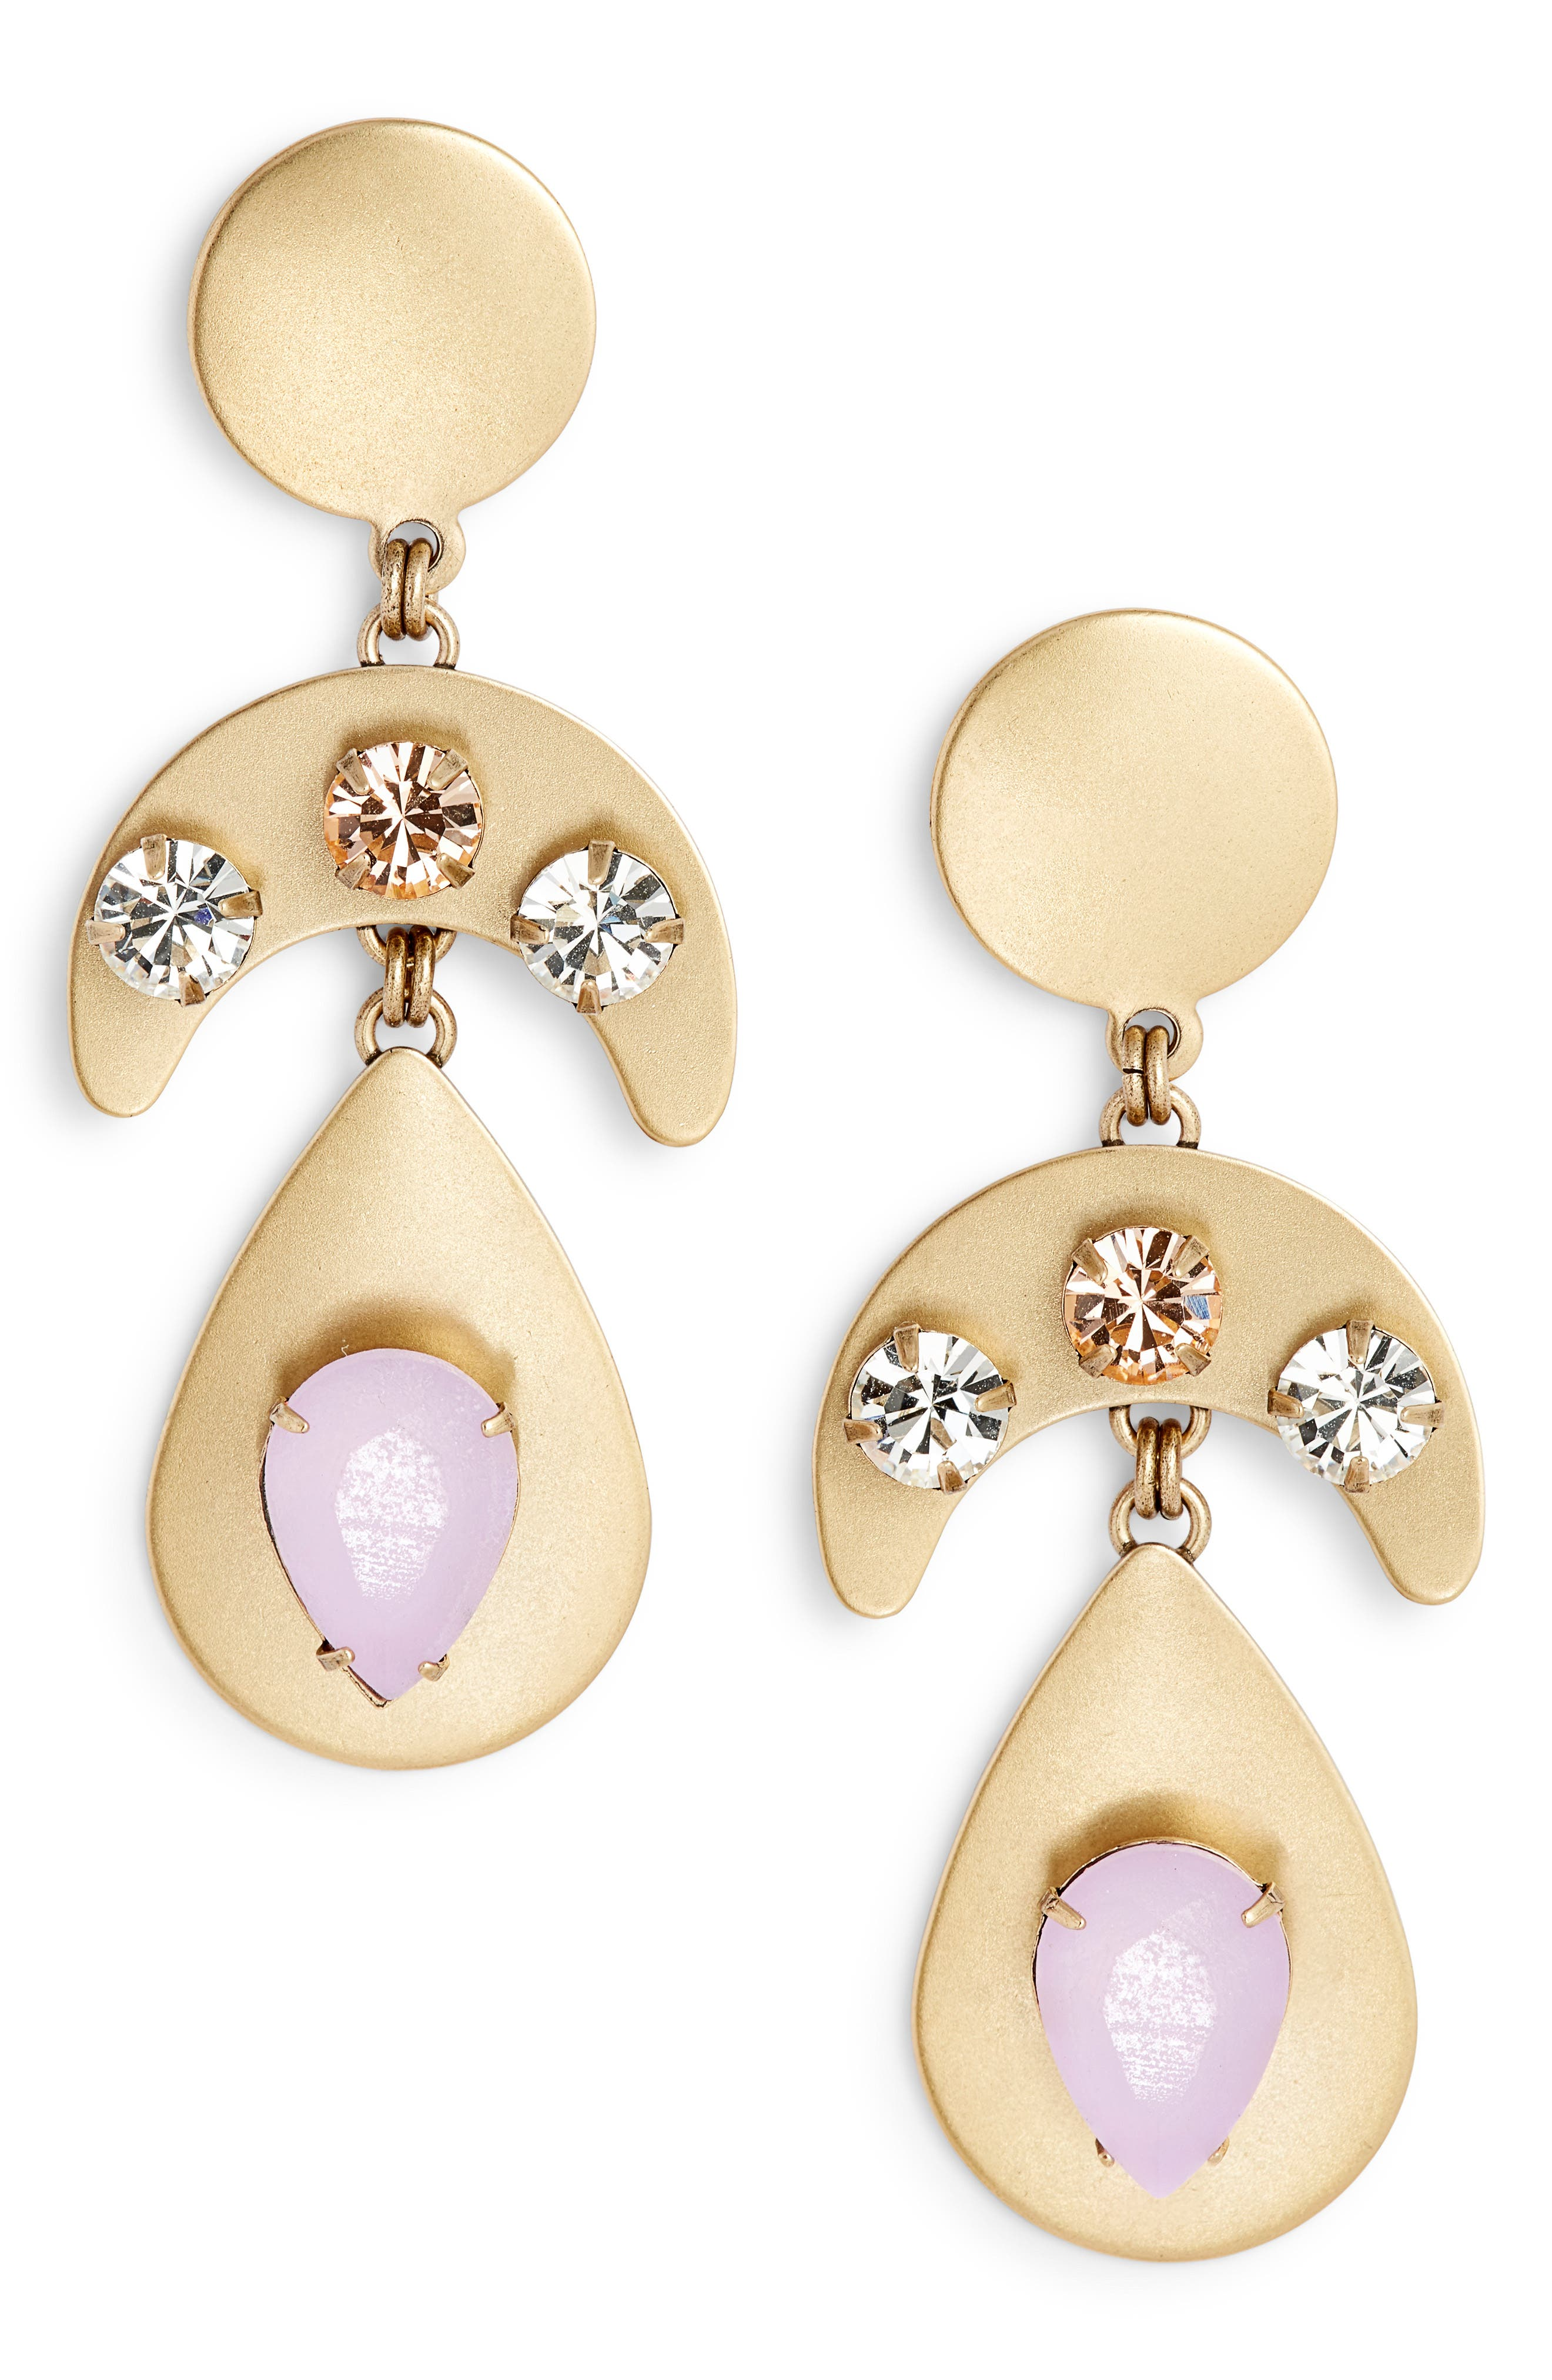 Everly Linked Drop Earrings,                             Main thumbnail 1, color,                             PURPLE MULTI